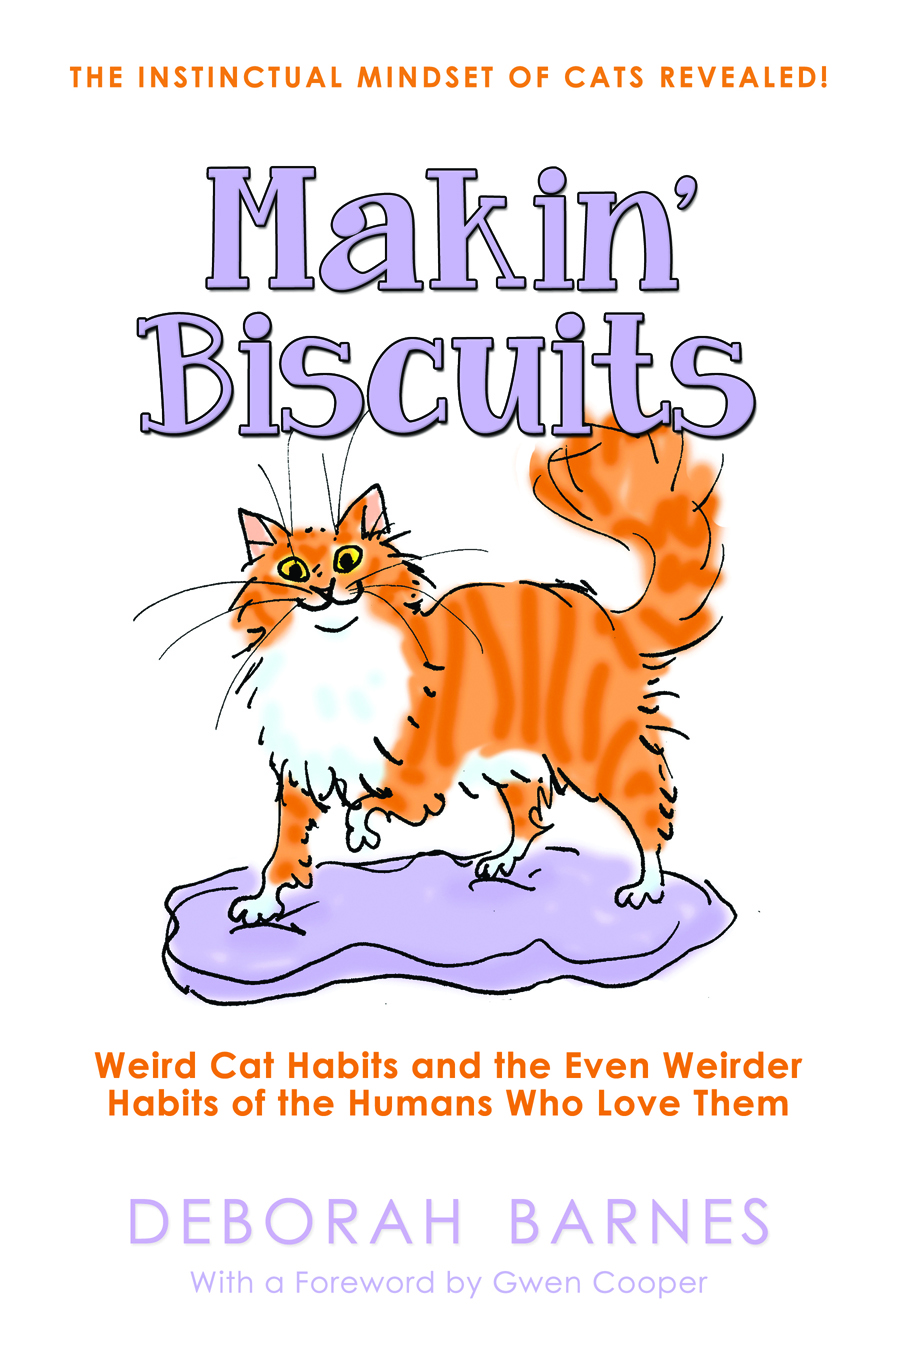 makinbiscuits-review